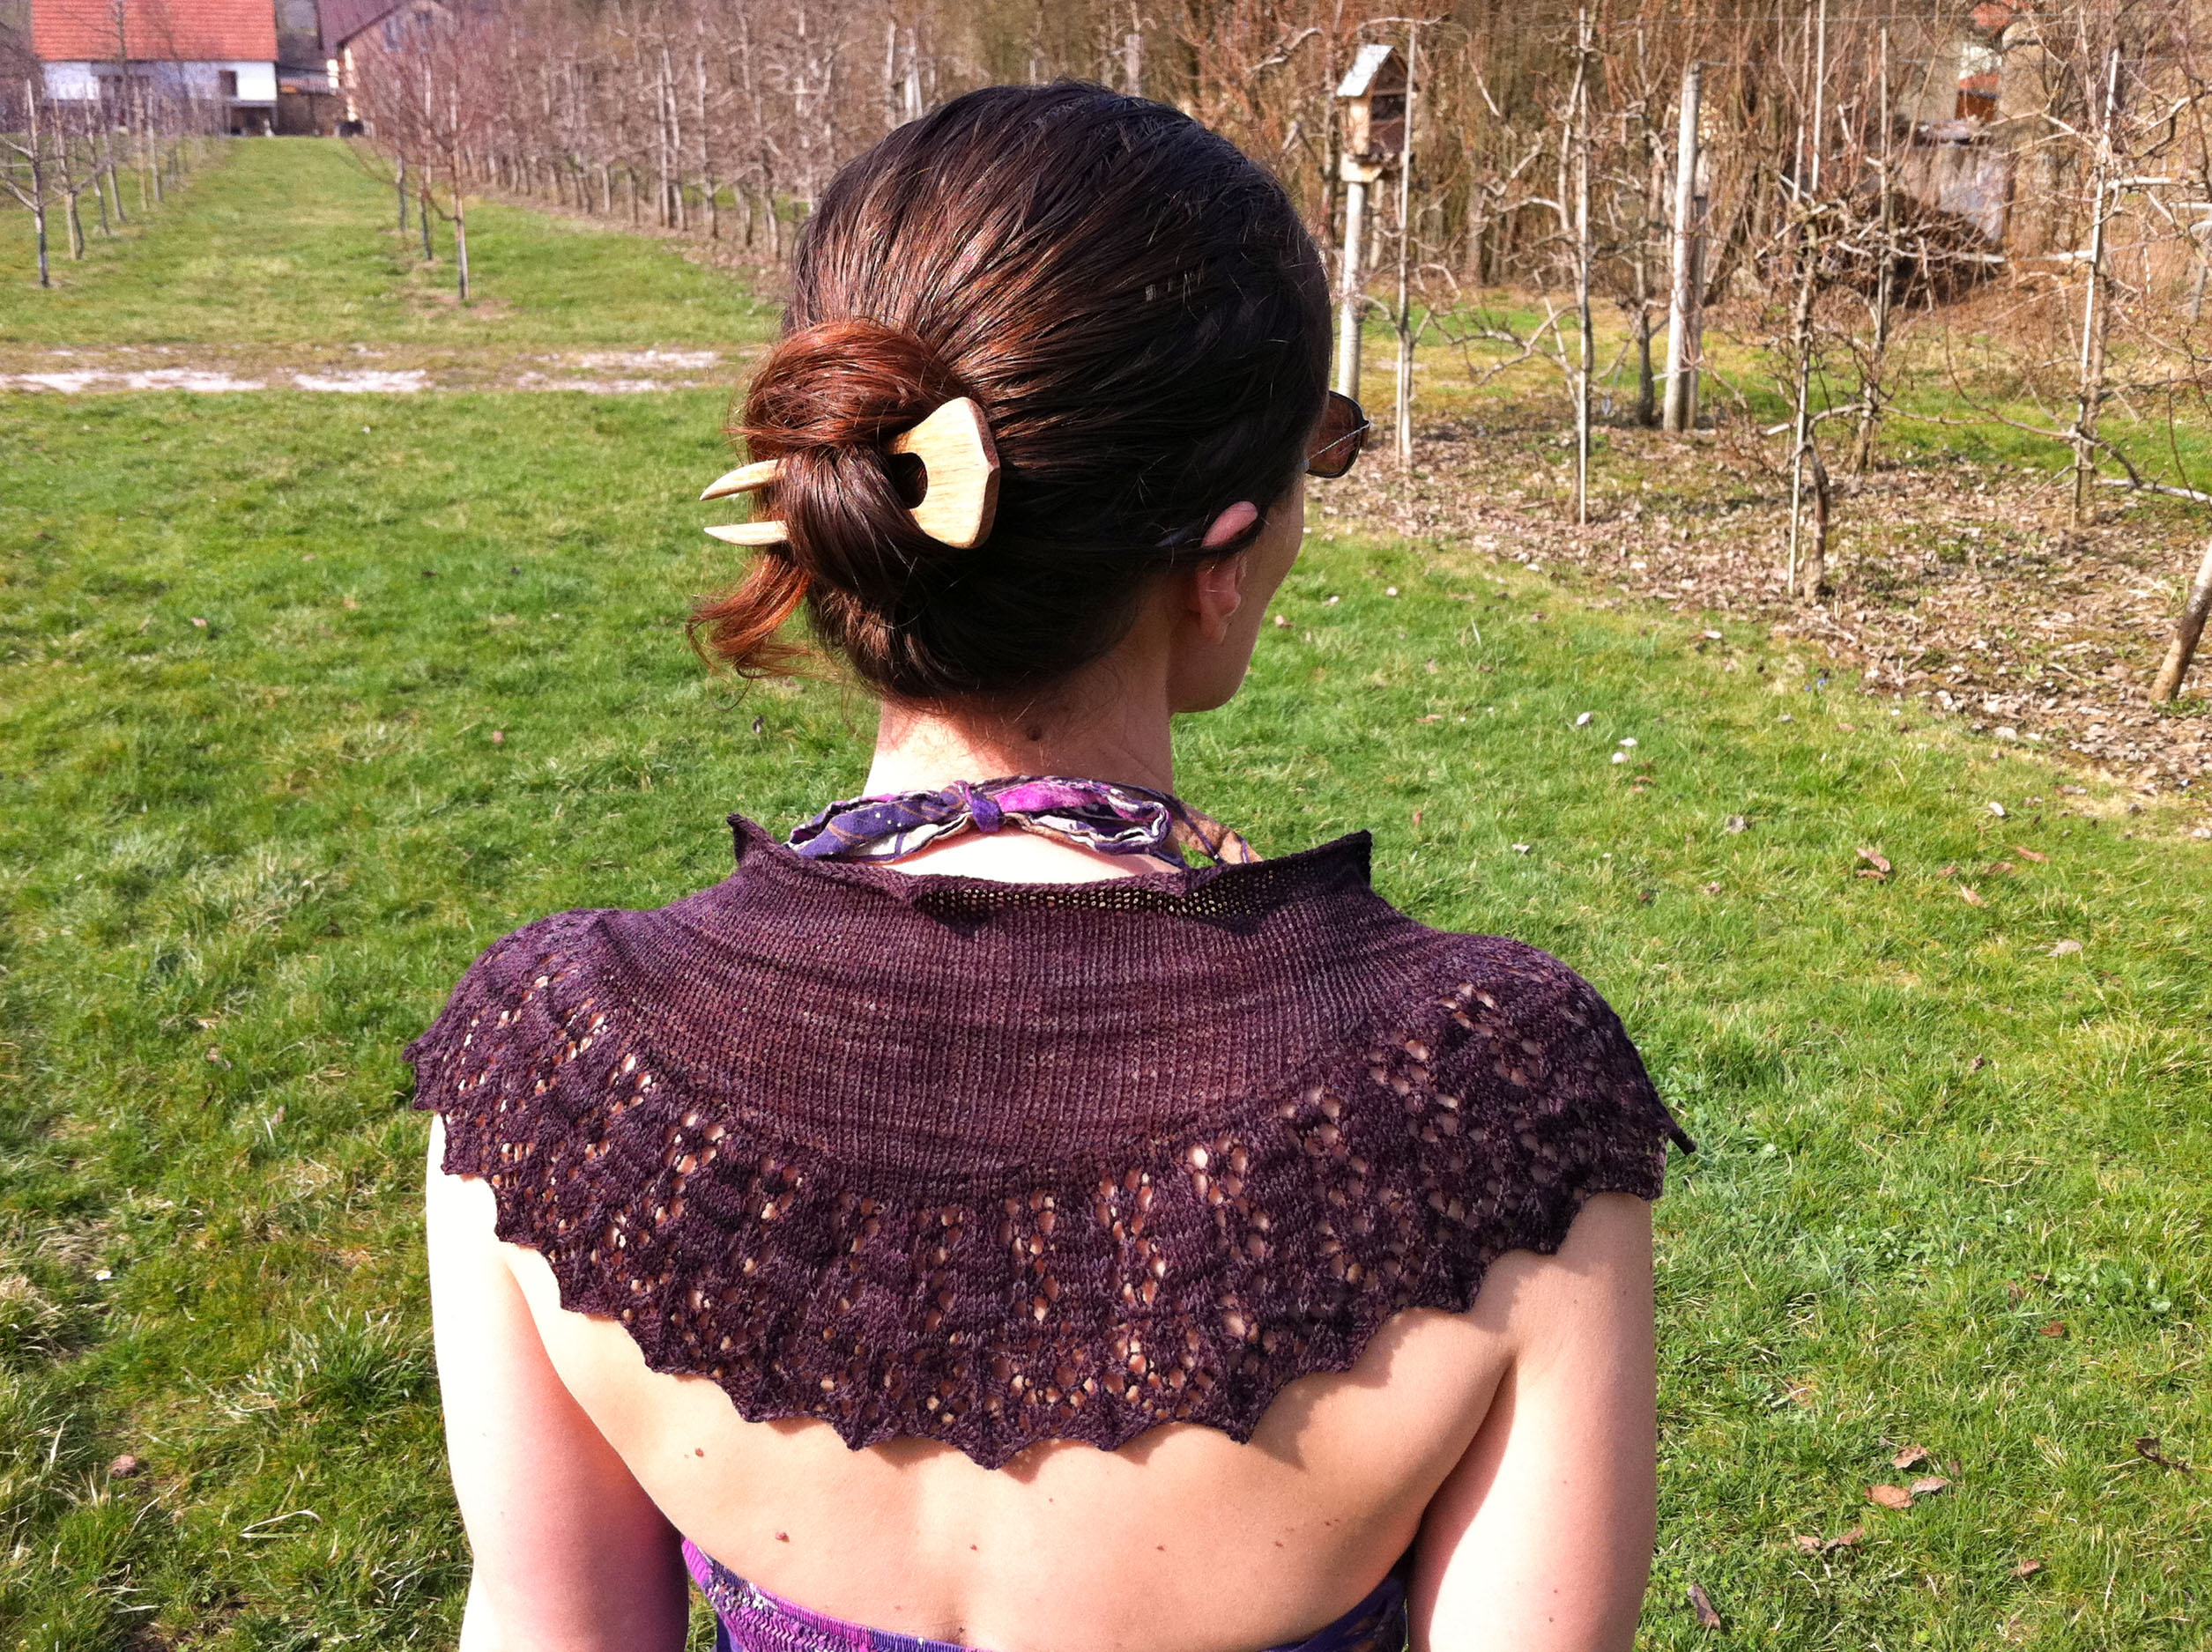 Priscilla shawl knitting pattern by Julia Riede